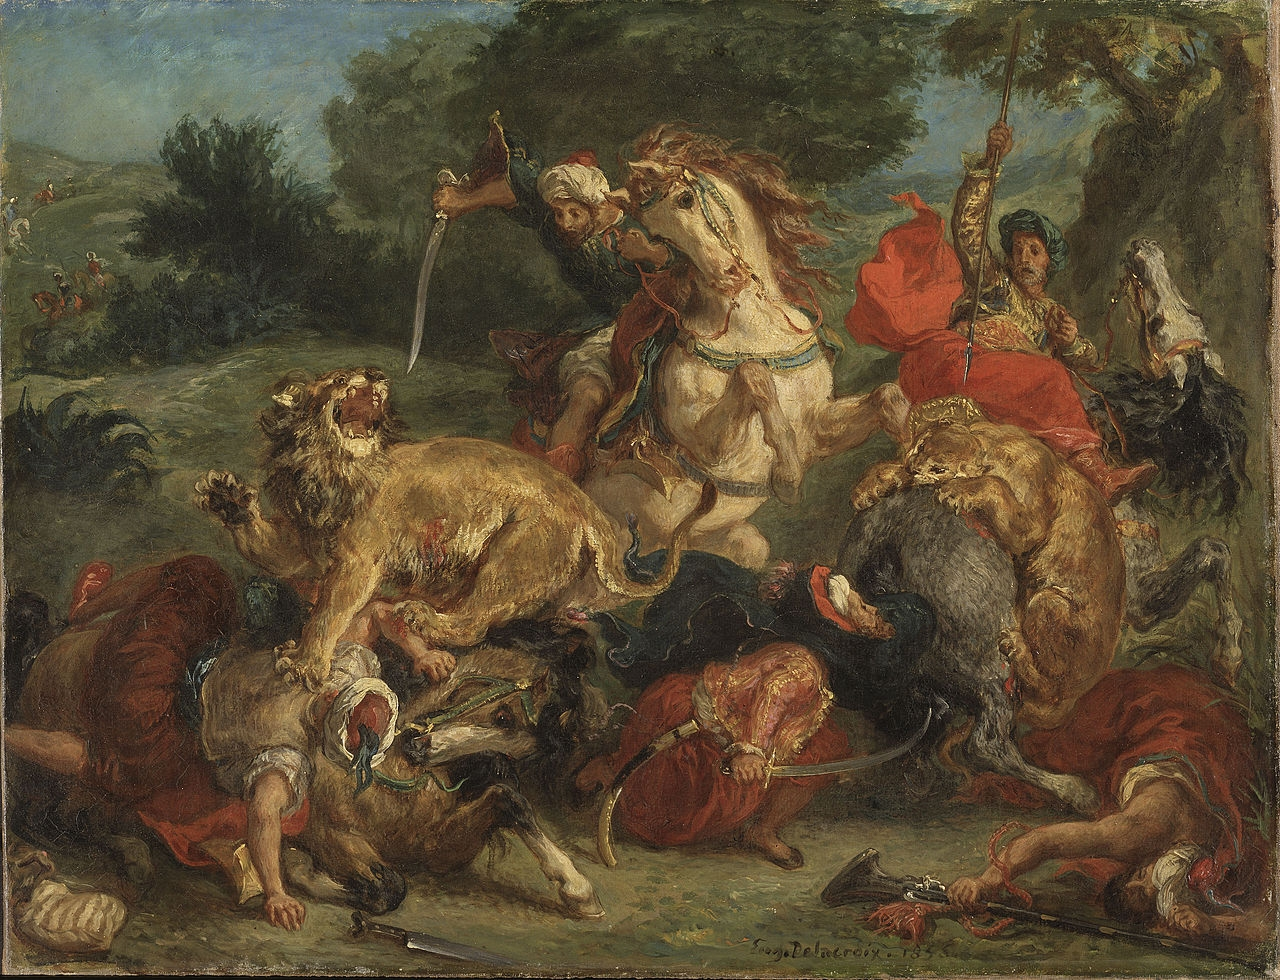 Eugène Delacroix  (1798–1863), 'The Lion Hunt', 1855, Oil on canvas, 57 * 74 cm,Nationalmuseum, Sweden.